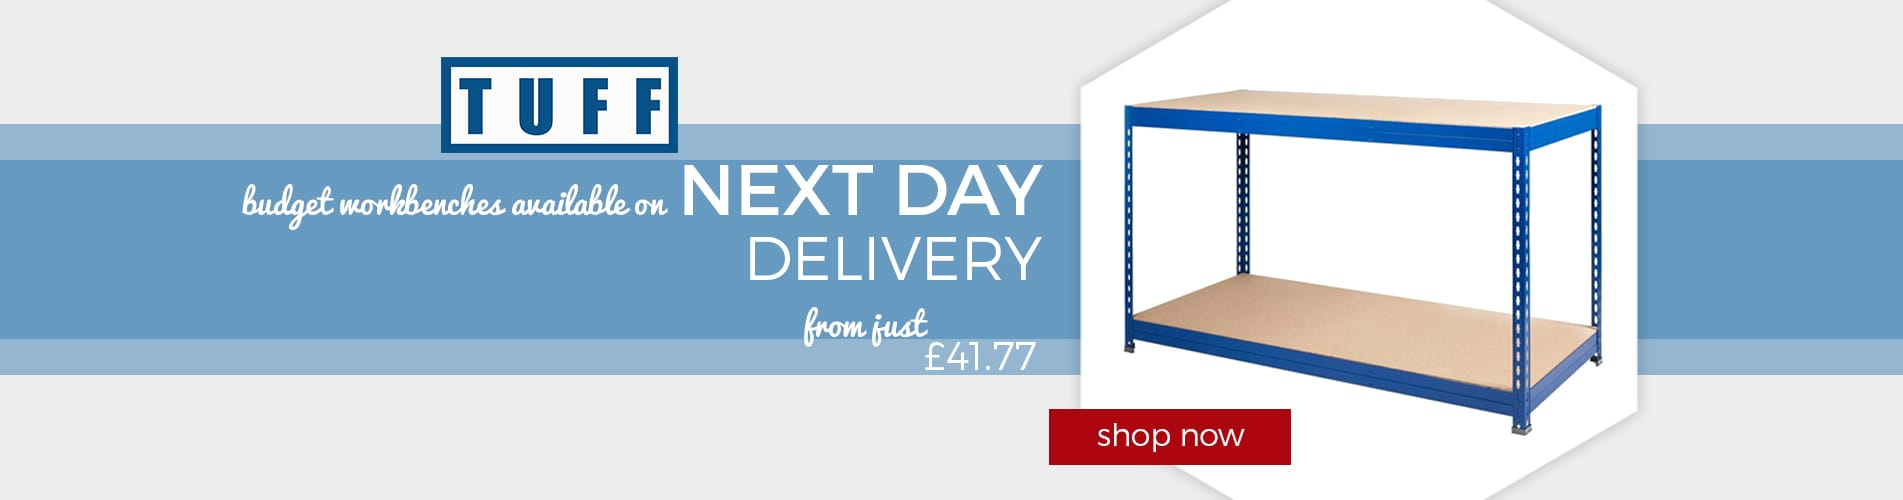 Shop Budget Workbenches available on Next Day Delivery